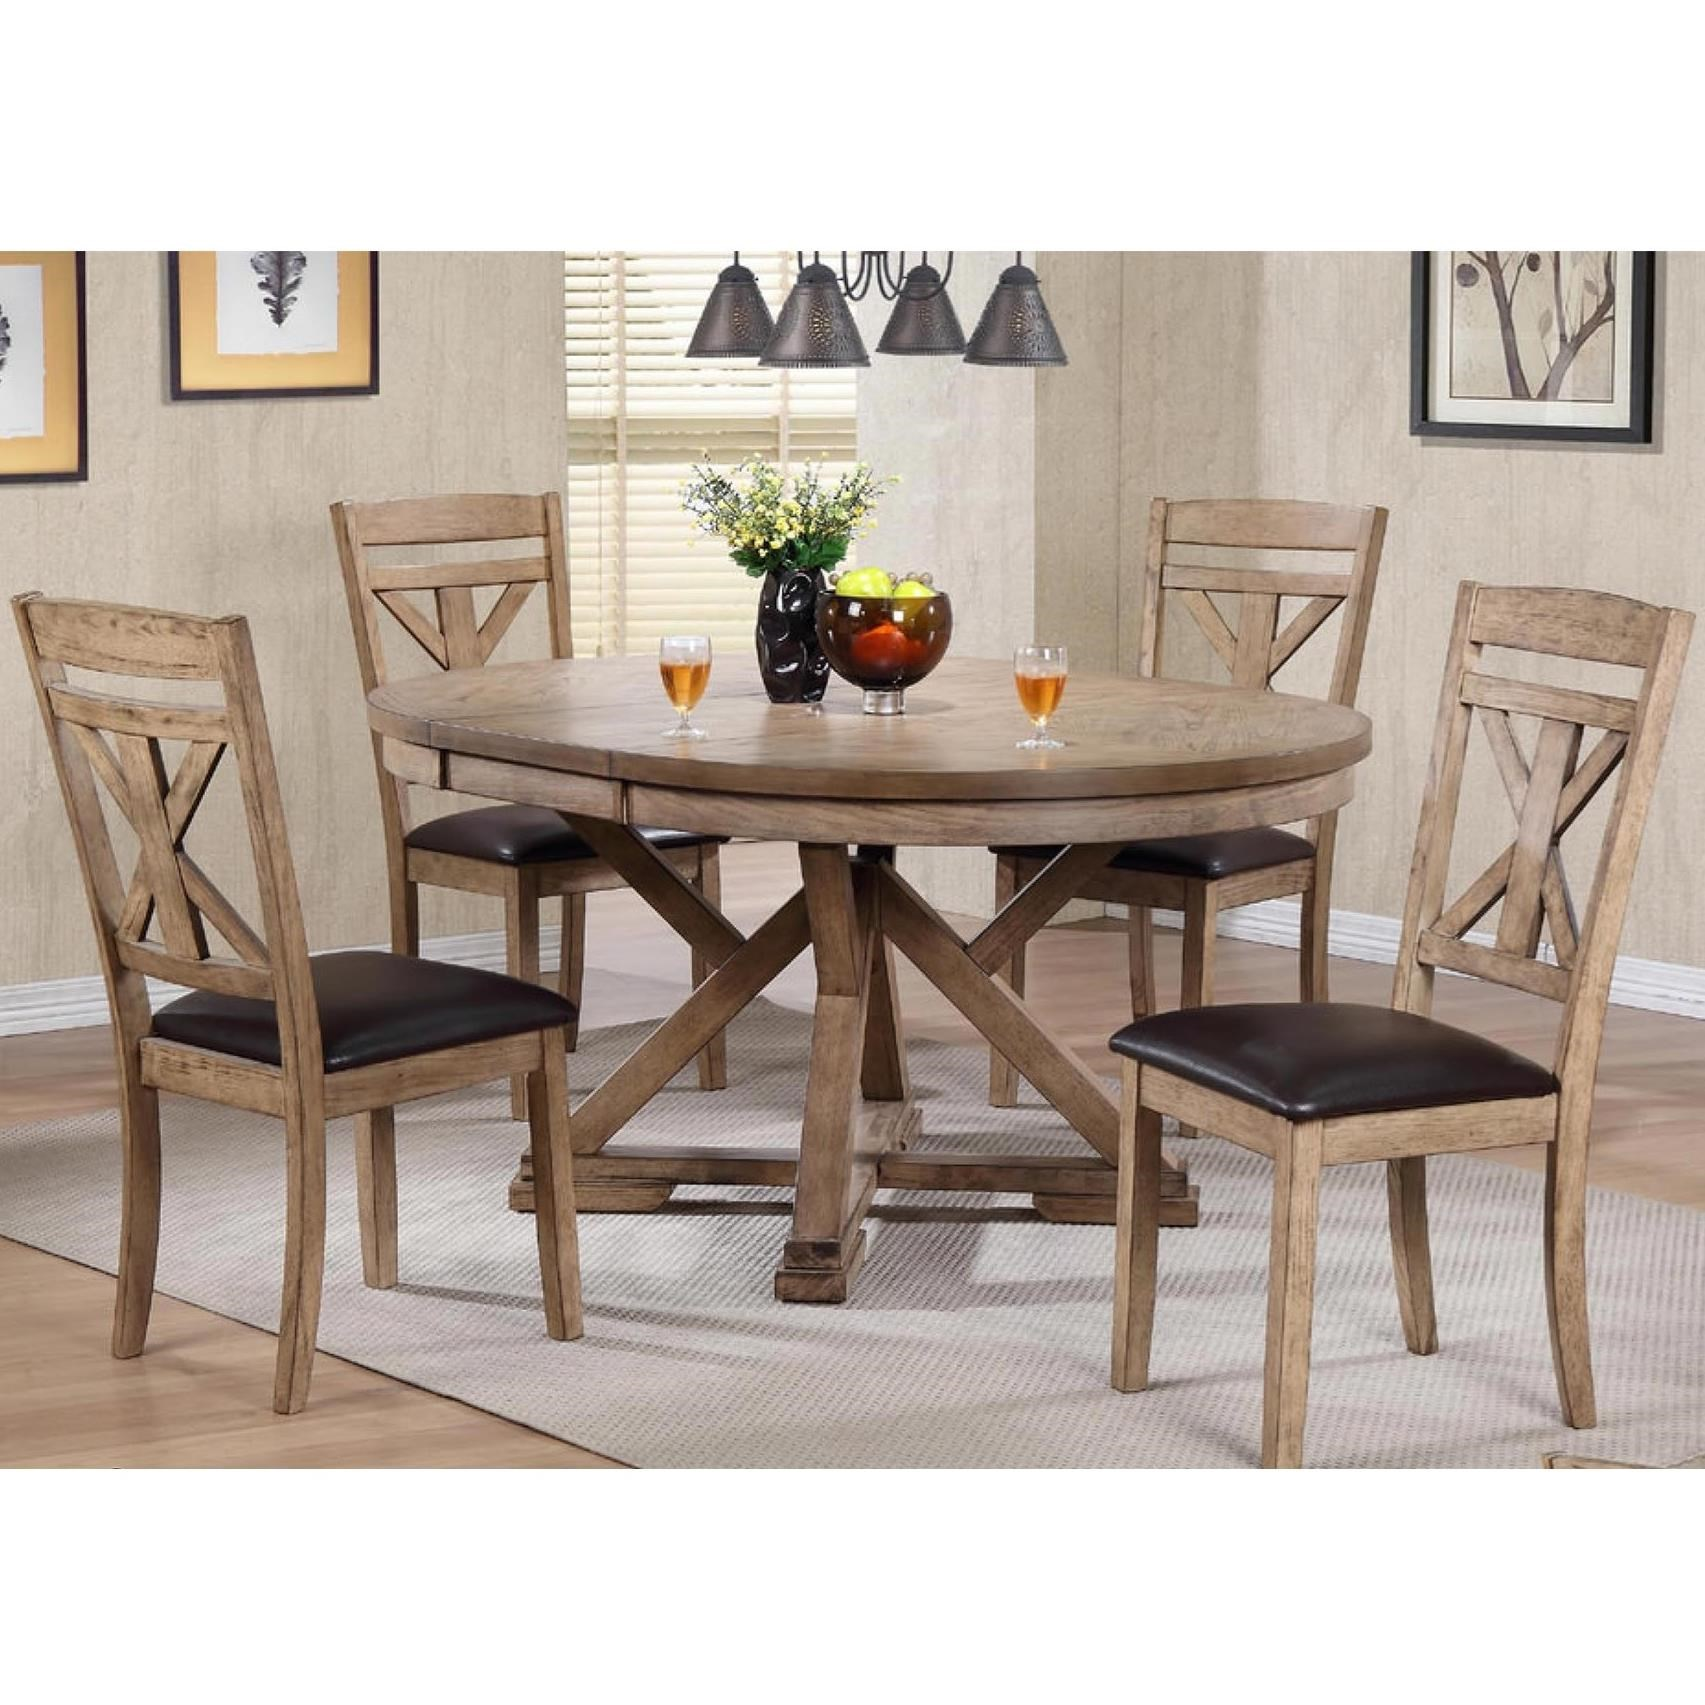 Winners Only Grandview 5 Piece Dining Set   Item Number: DFG14866+4x52S